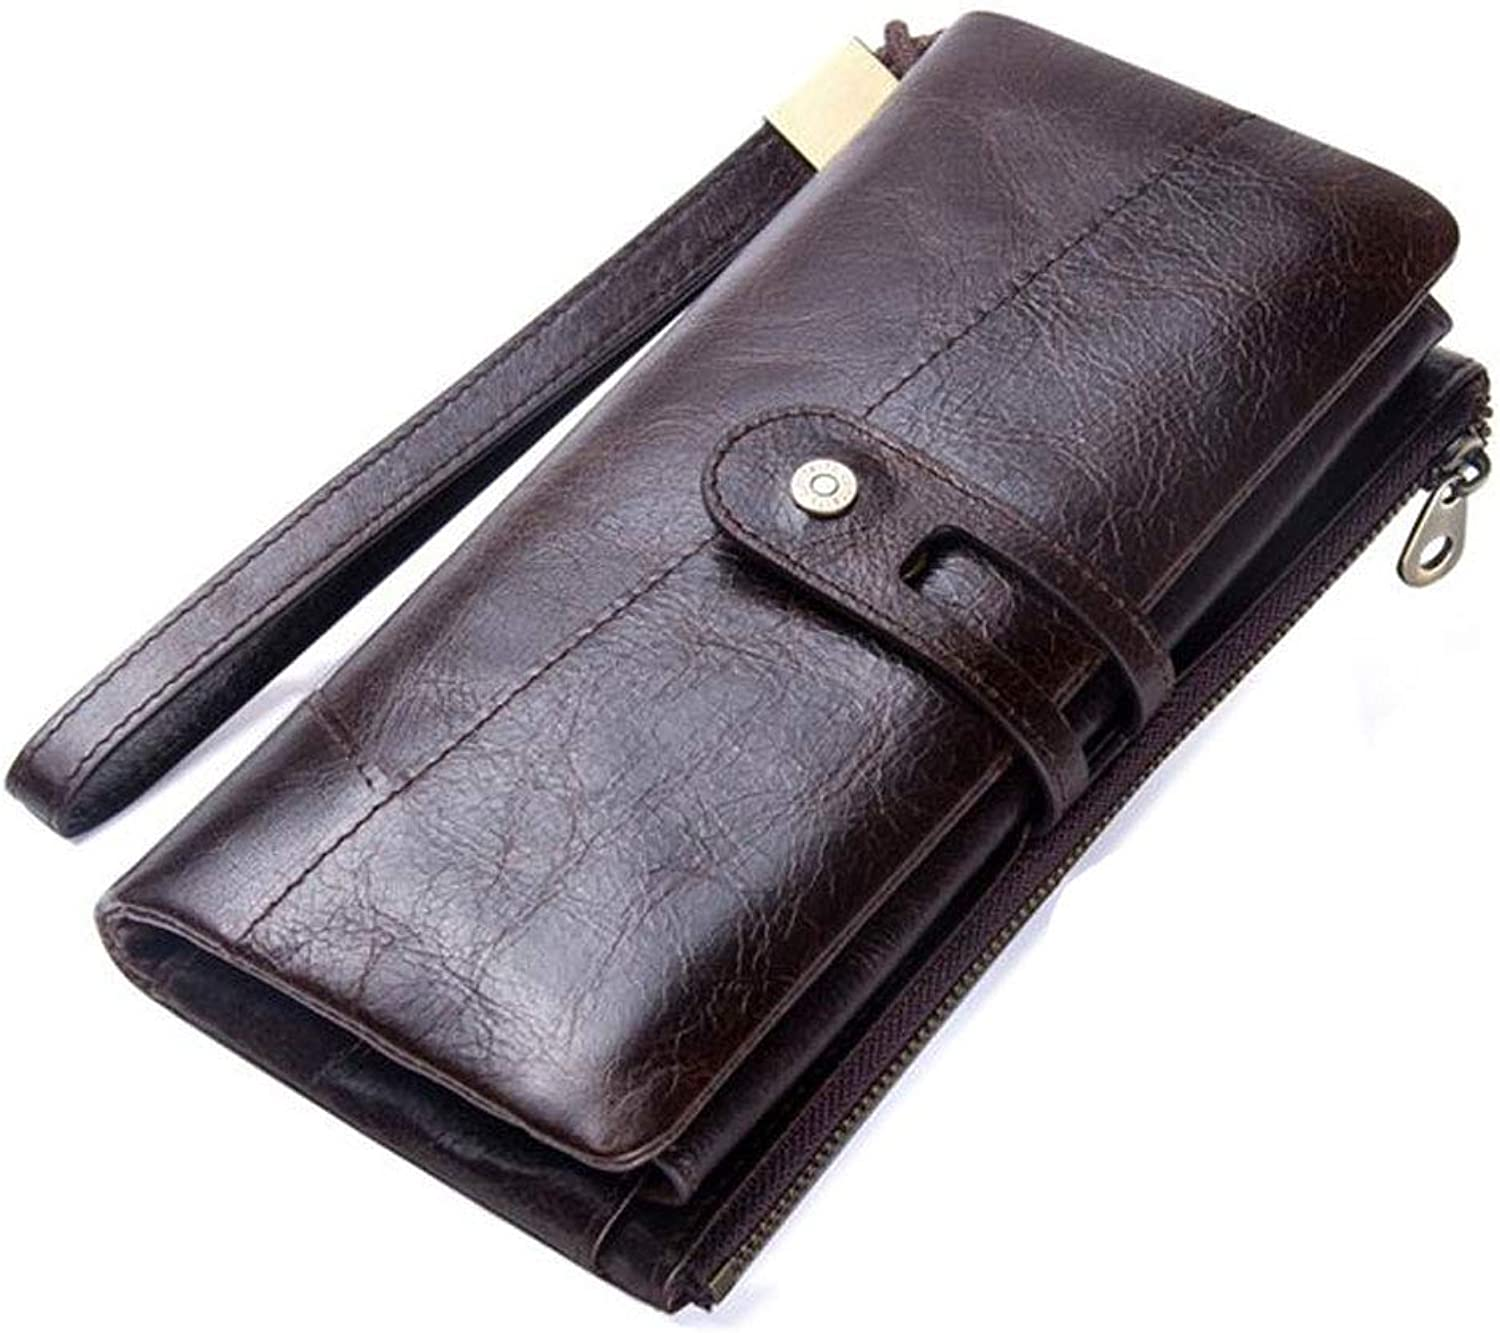 Casual Women's Clutch Bag Leather with Wrist Strap Leather Wallet (color   Dark Brown)